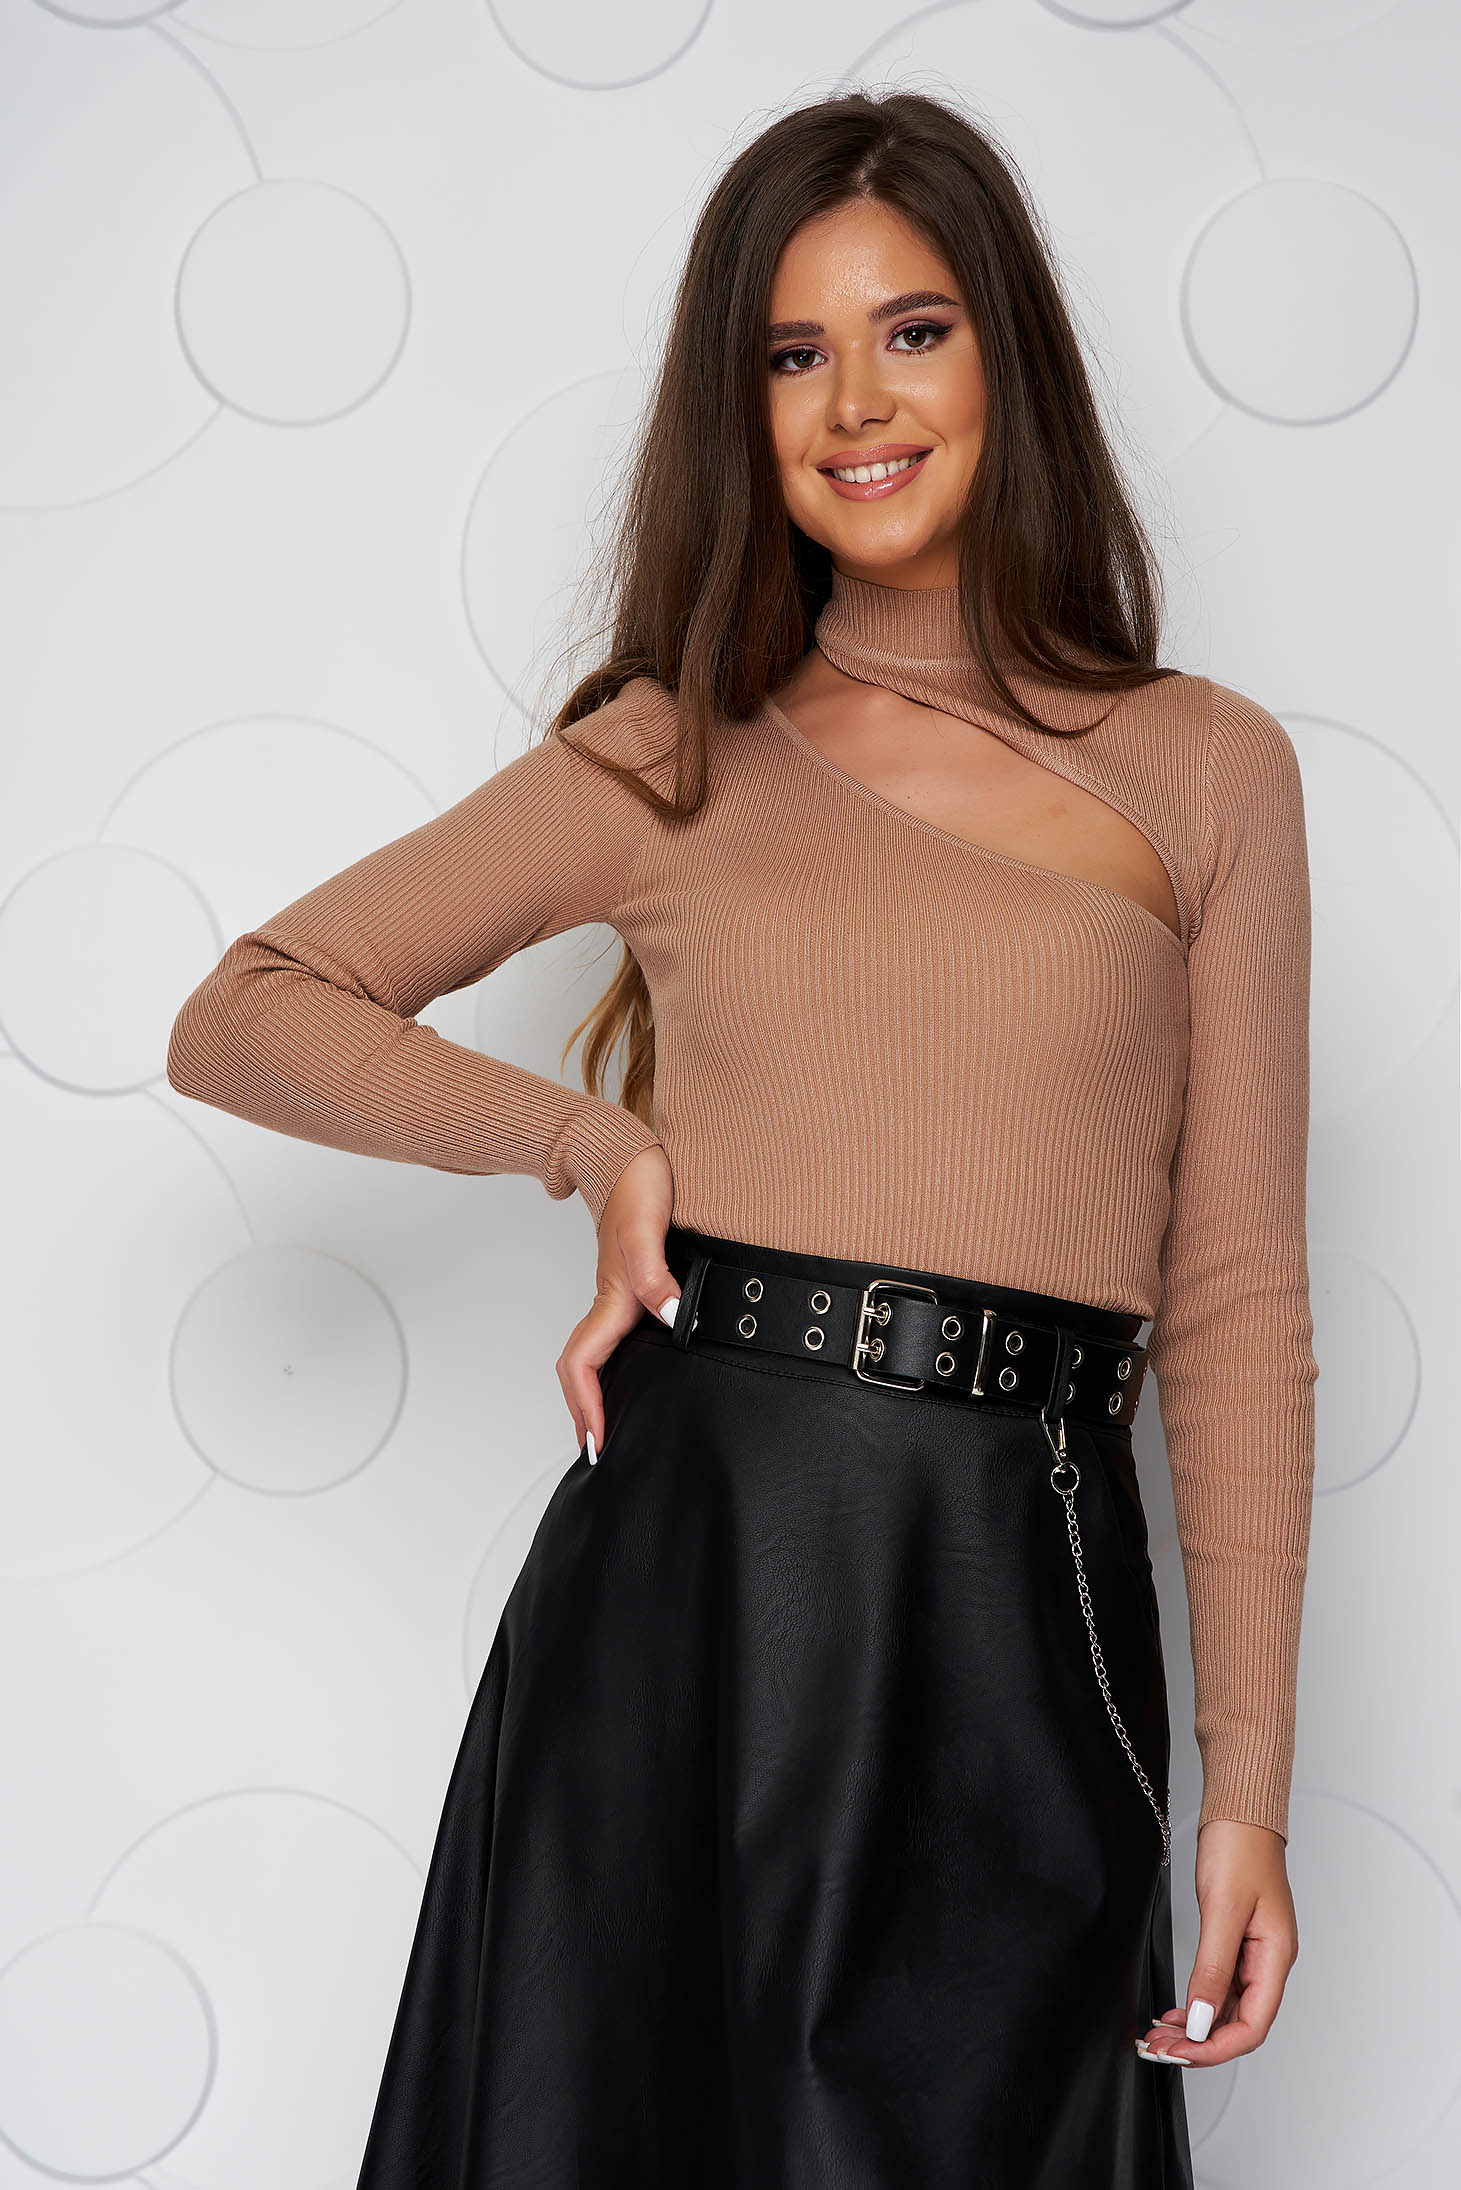 Brown women`s blouse tented short cut cut-out bust design knitted fabric from striped fabric